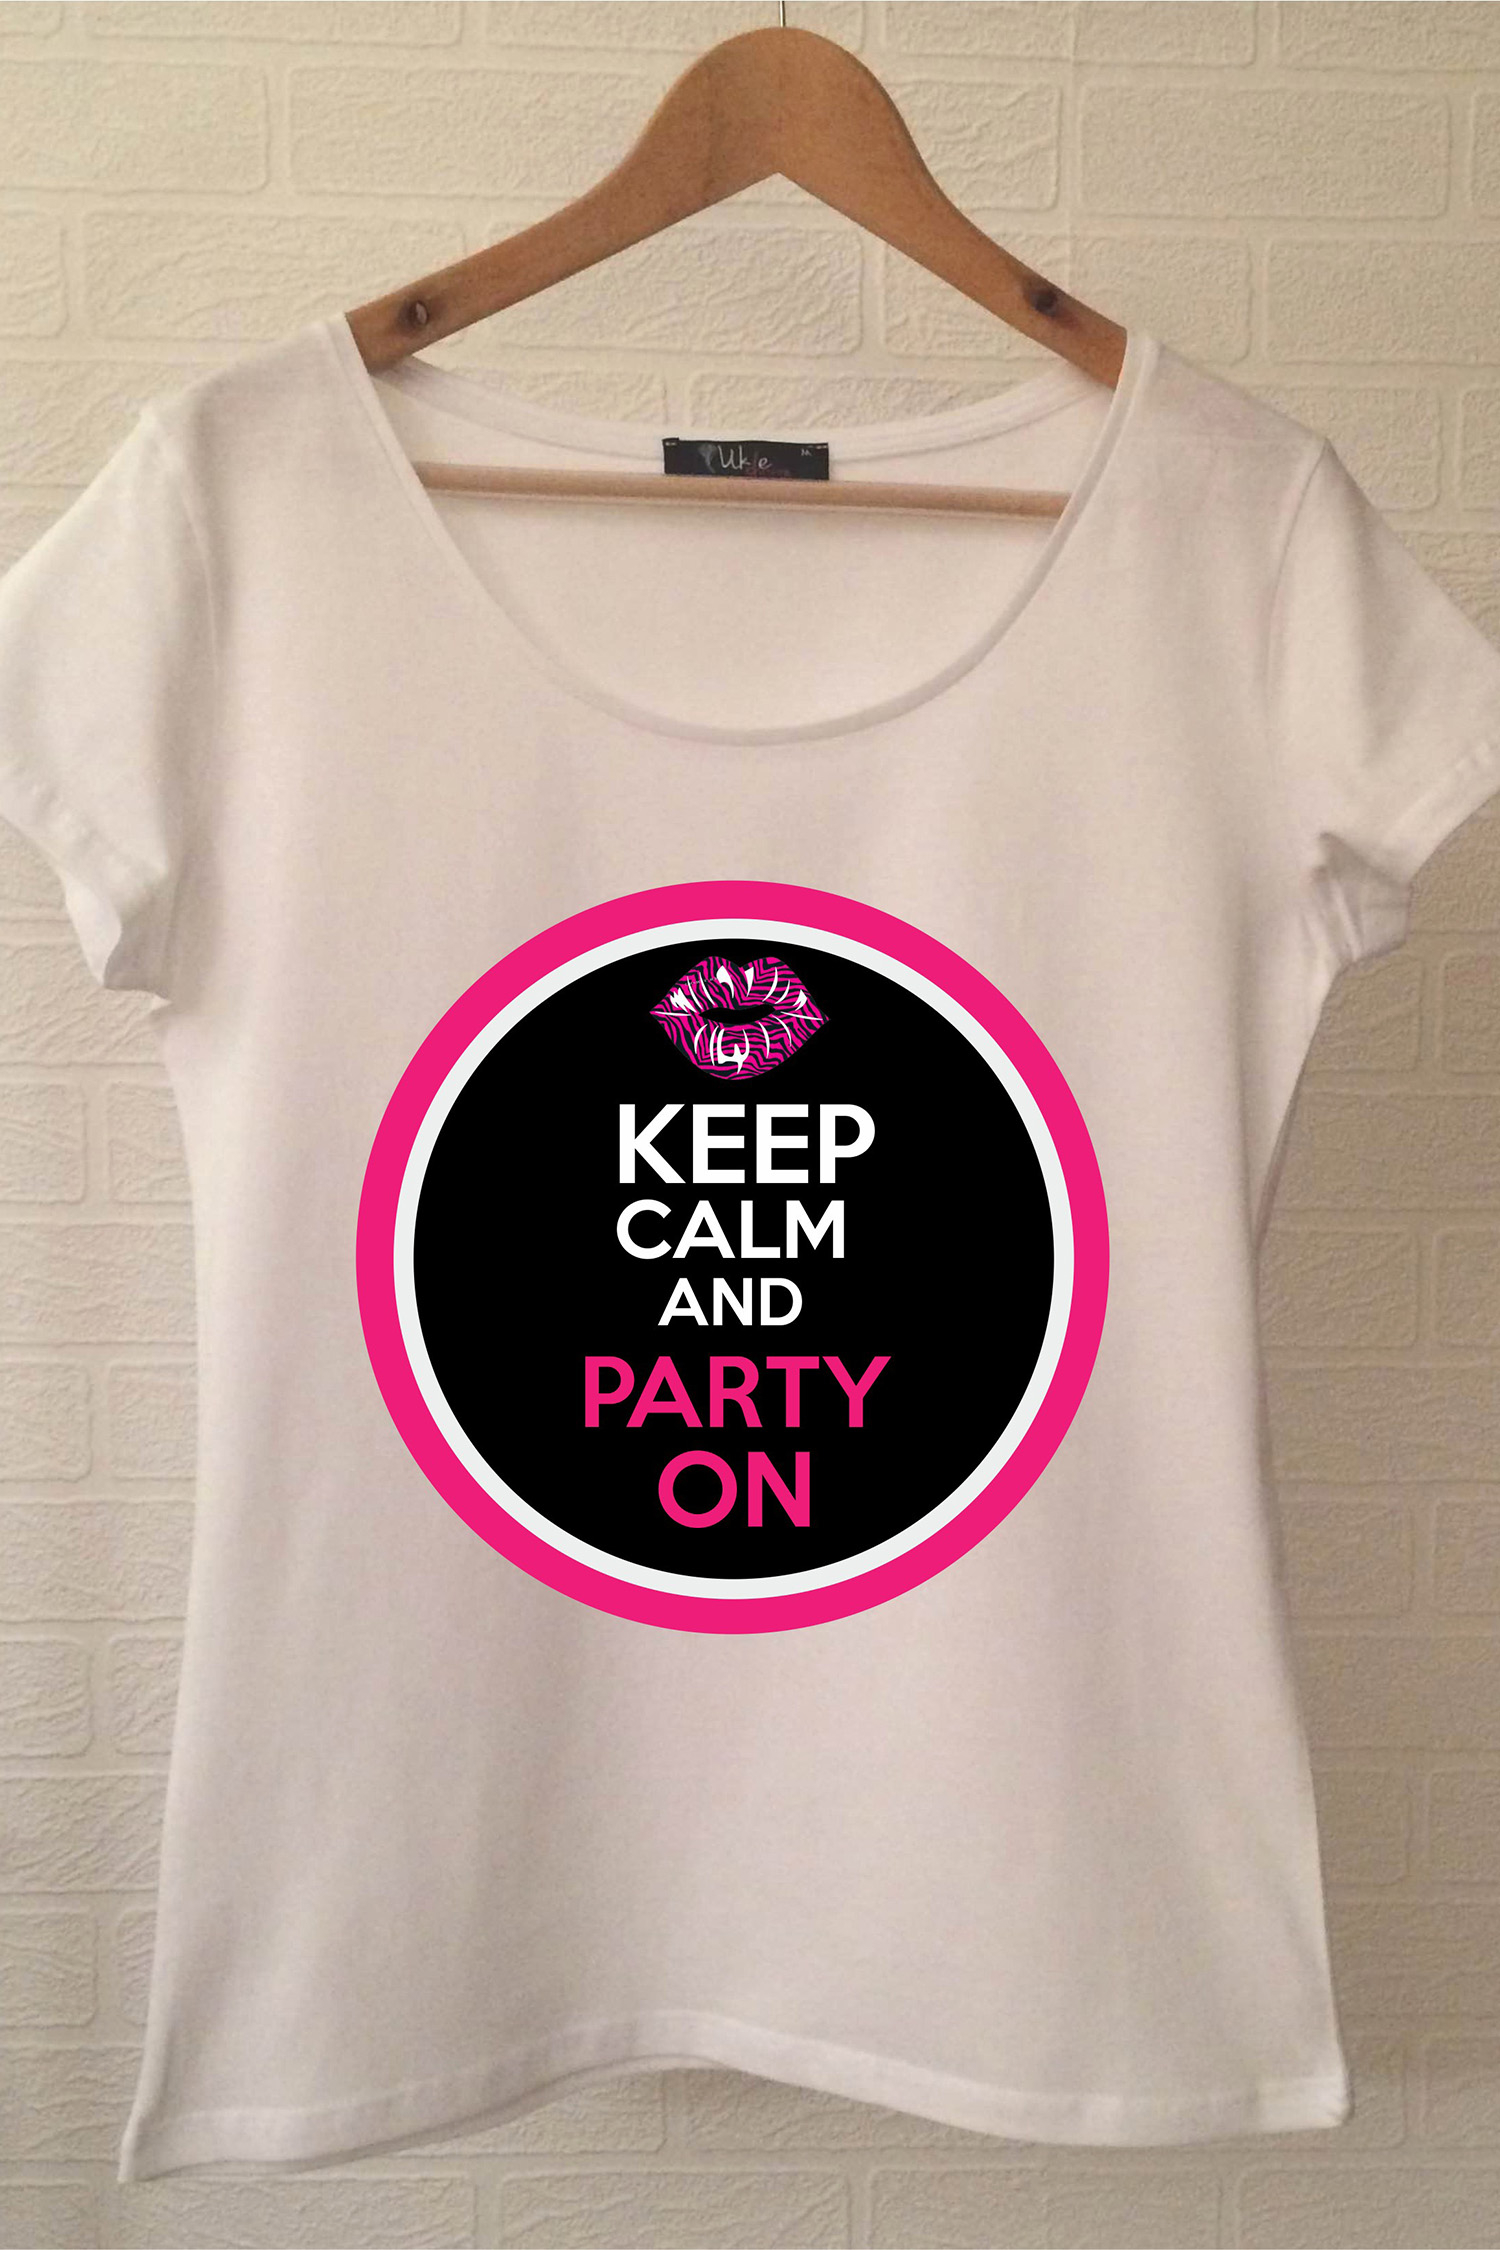 Brides Party T-shirt ukde80